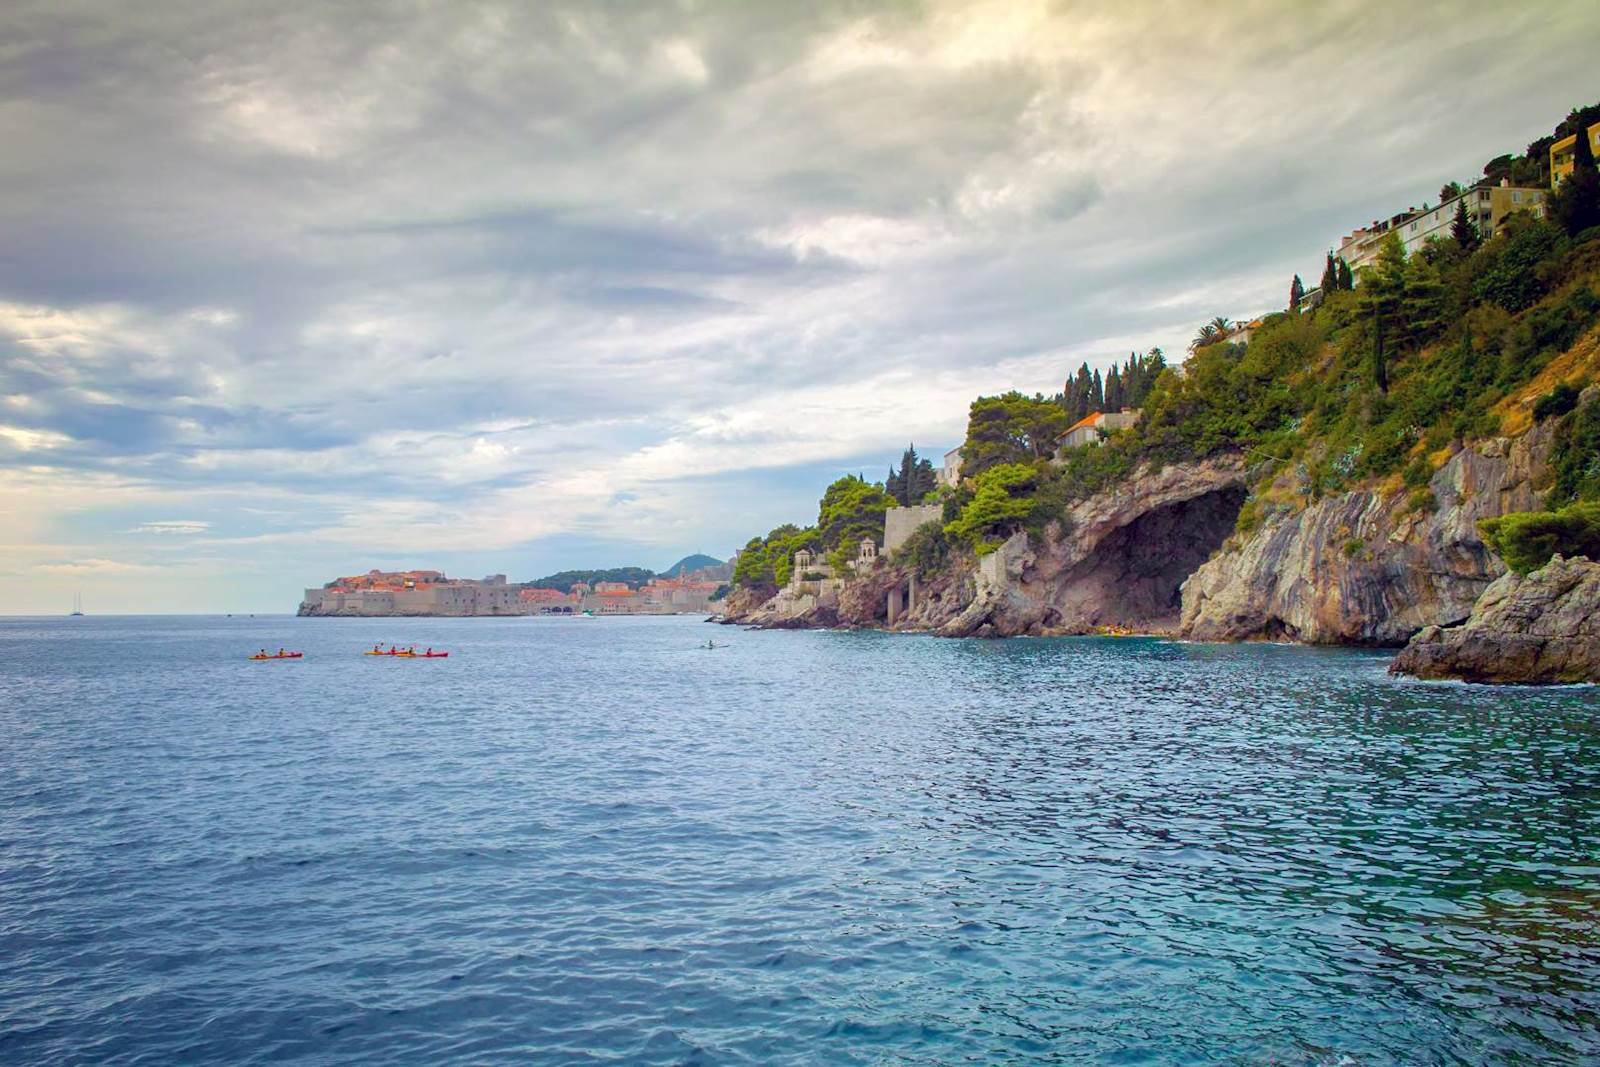 -images-excursions-elaphite-islands-speed-boat-excursion-z-03-03-private-boat-tour-island-sipan-elafiti-dubrovnik-panorama.jpg